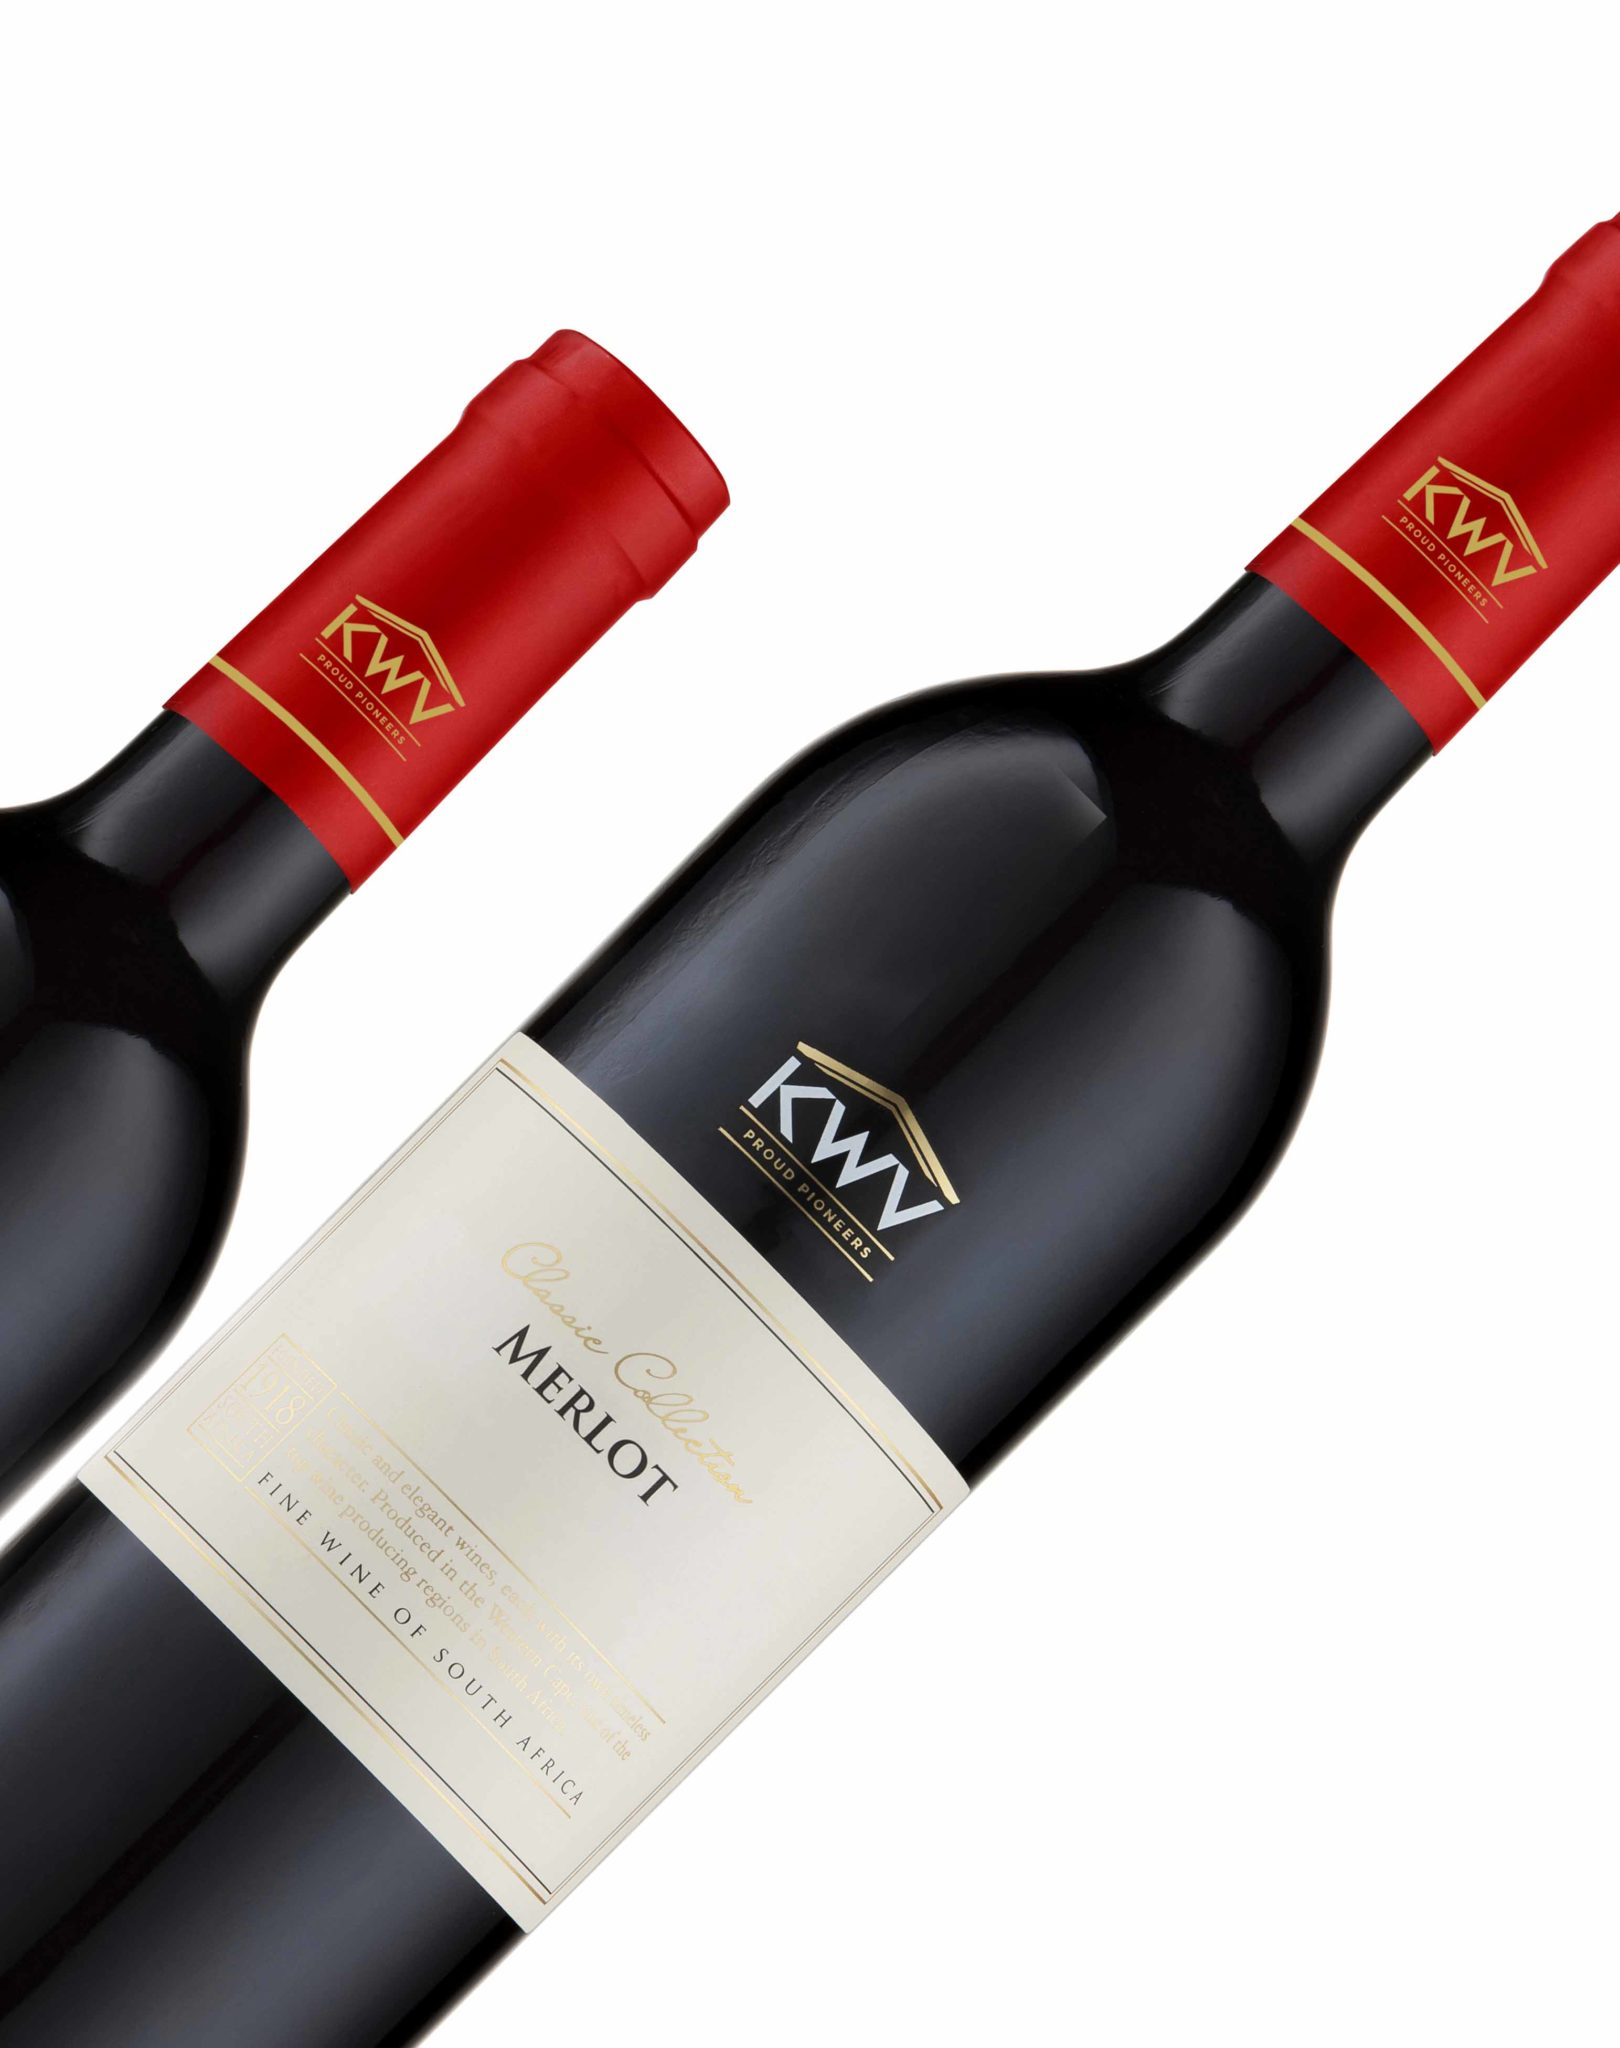 KWV Classic Collection Merlot 2015